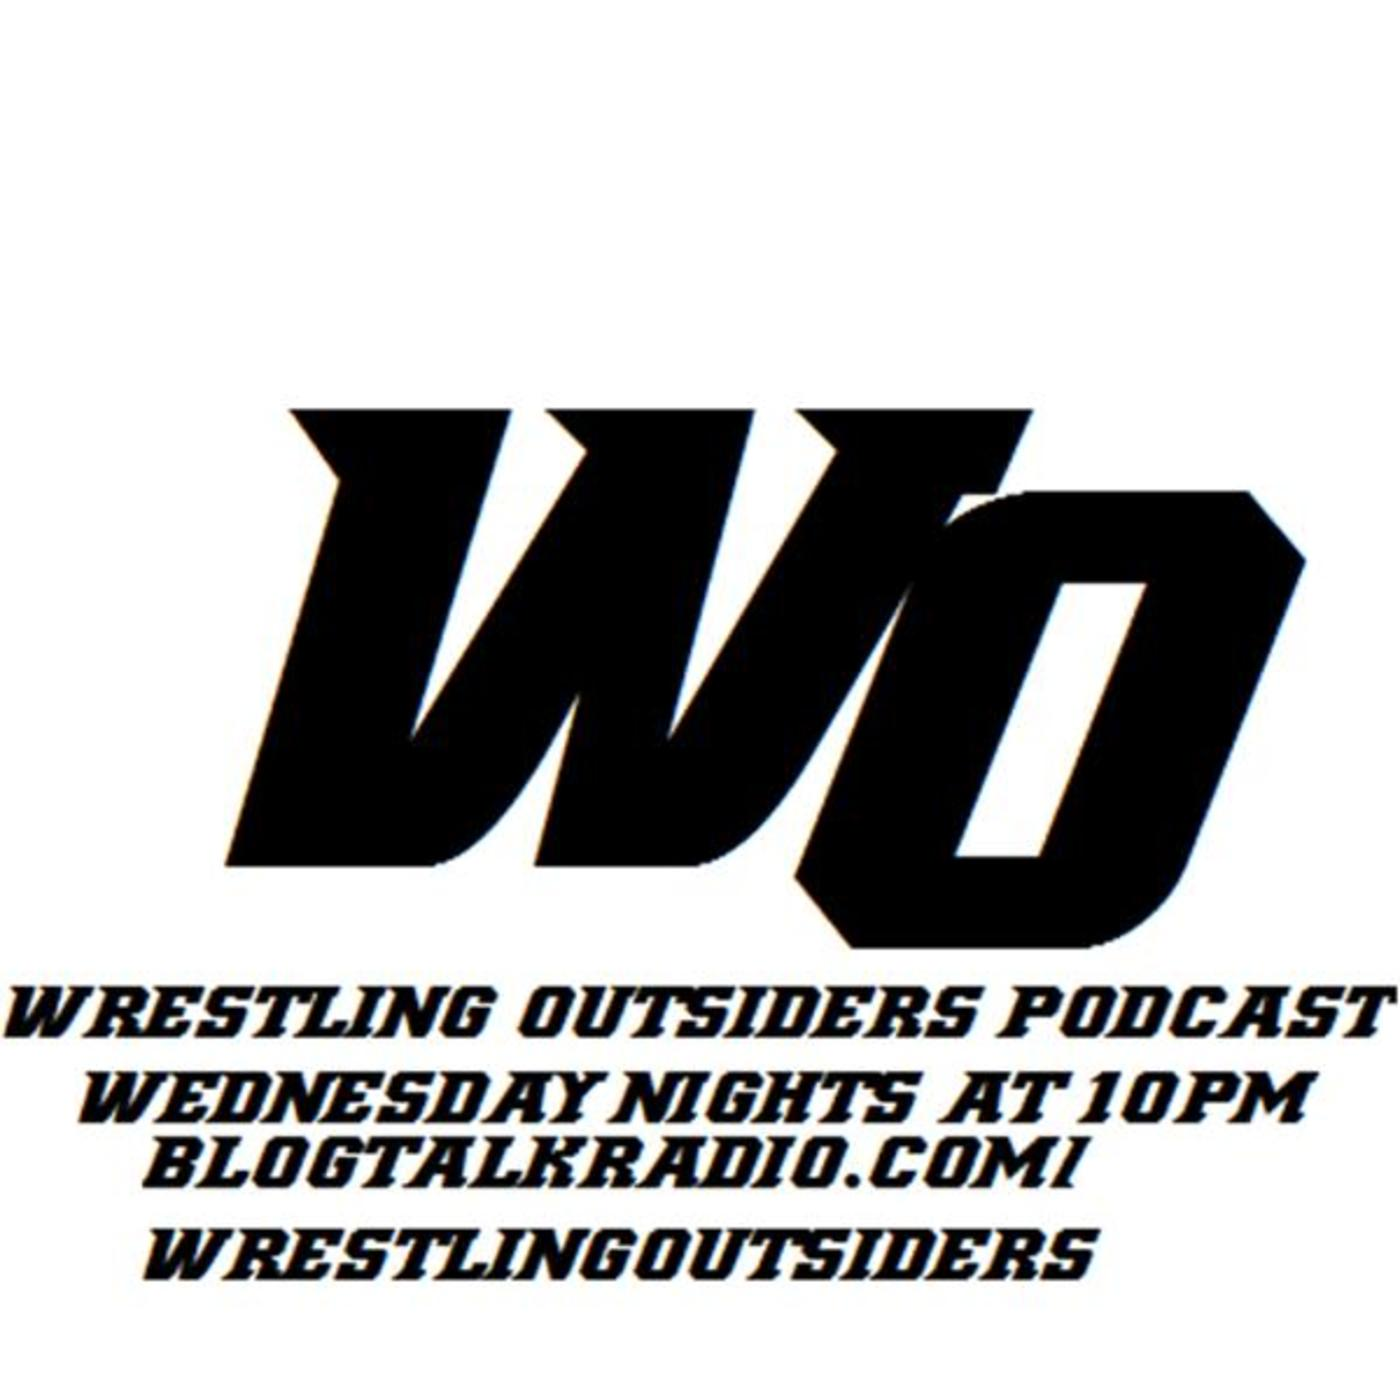 Wrestling Outsiders Podcast